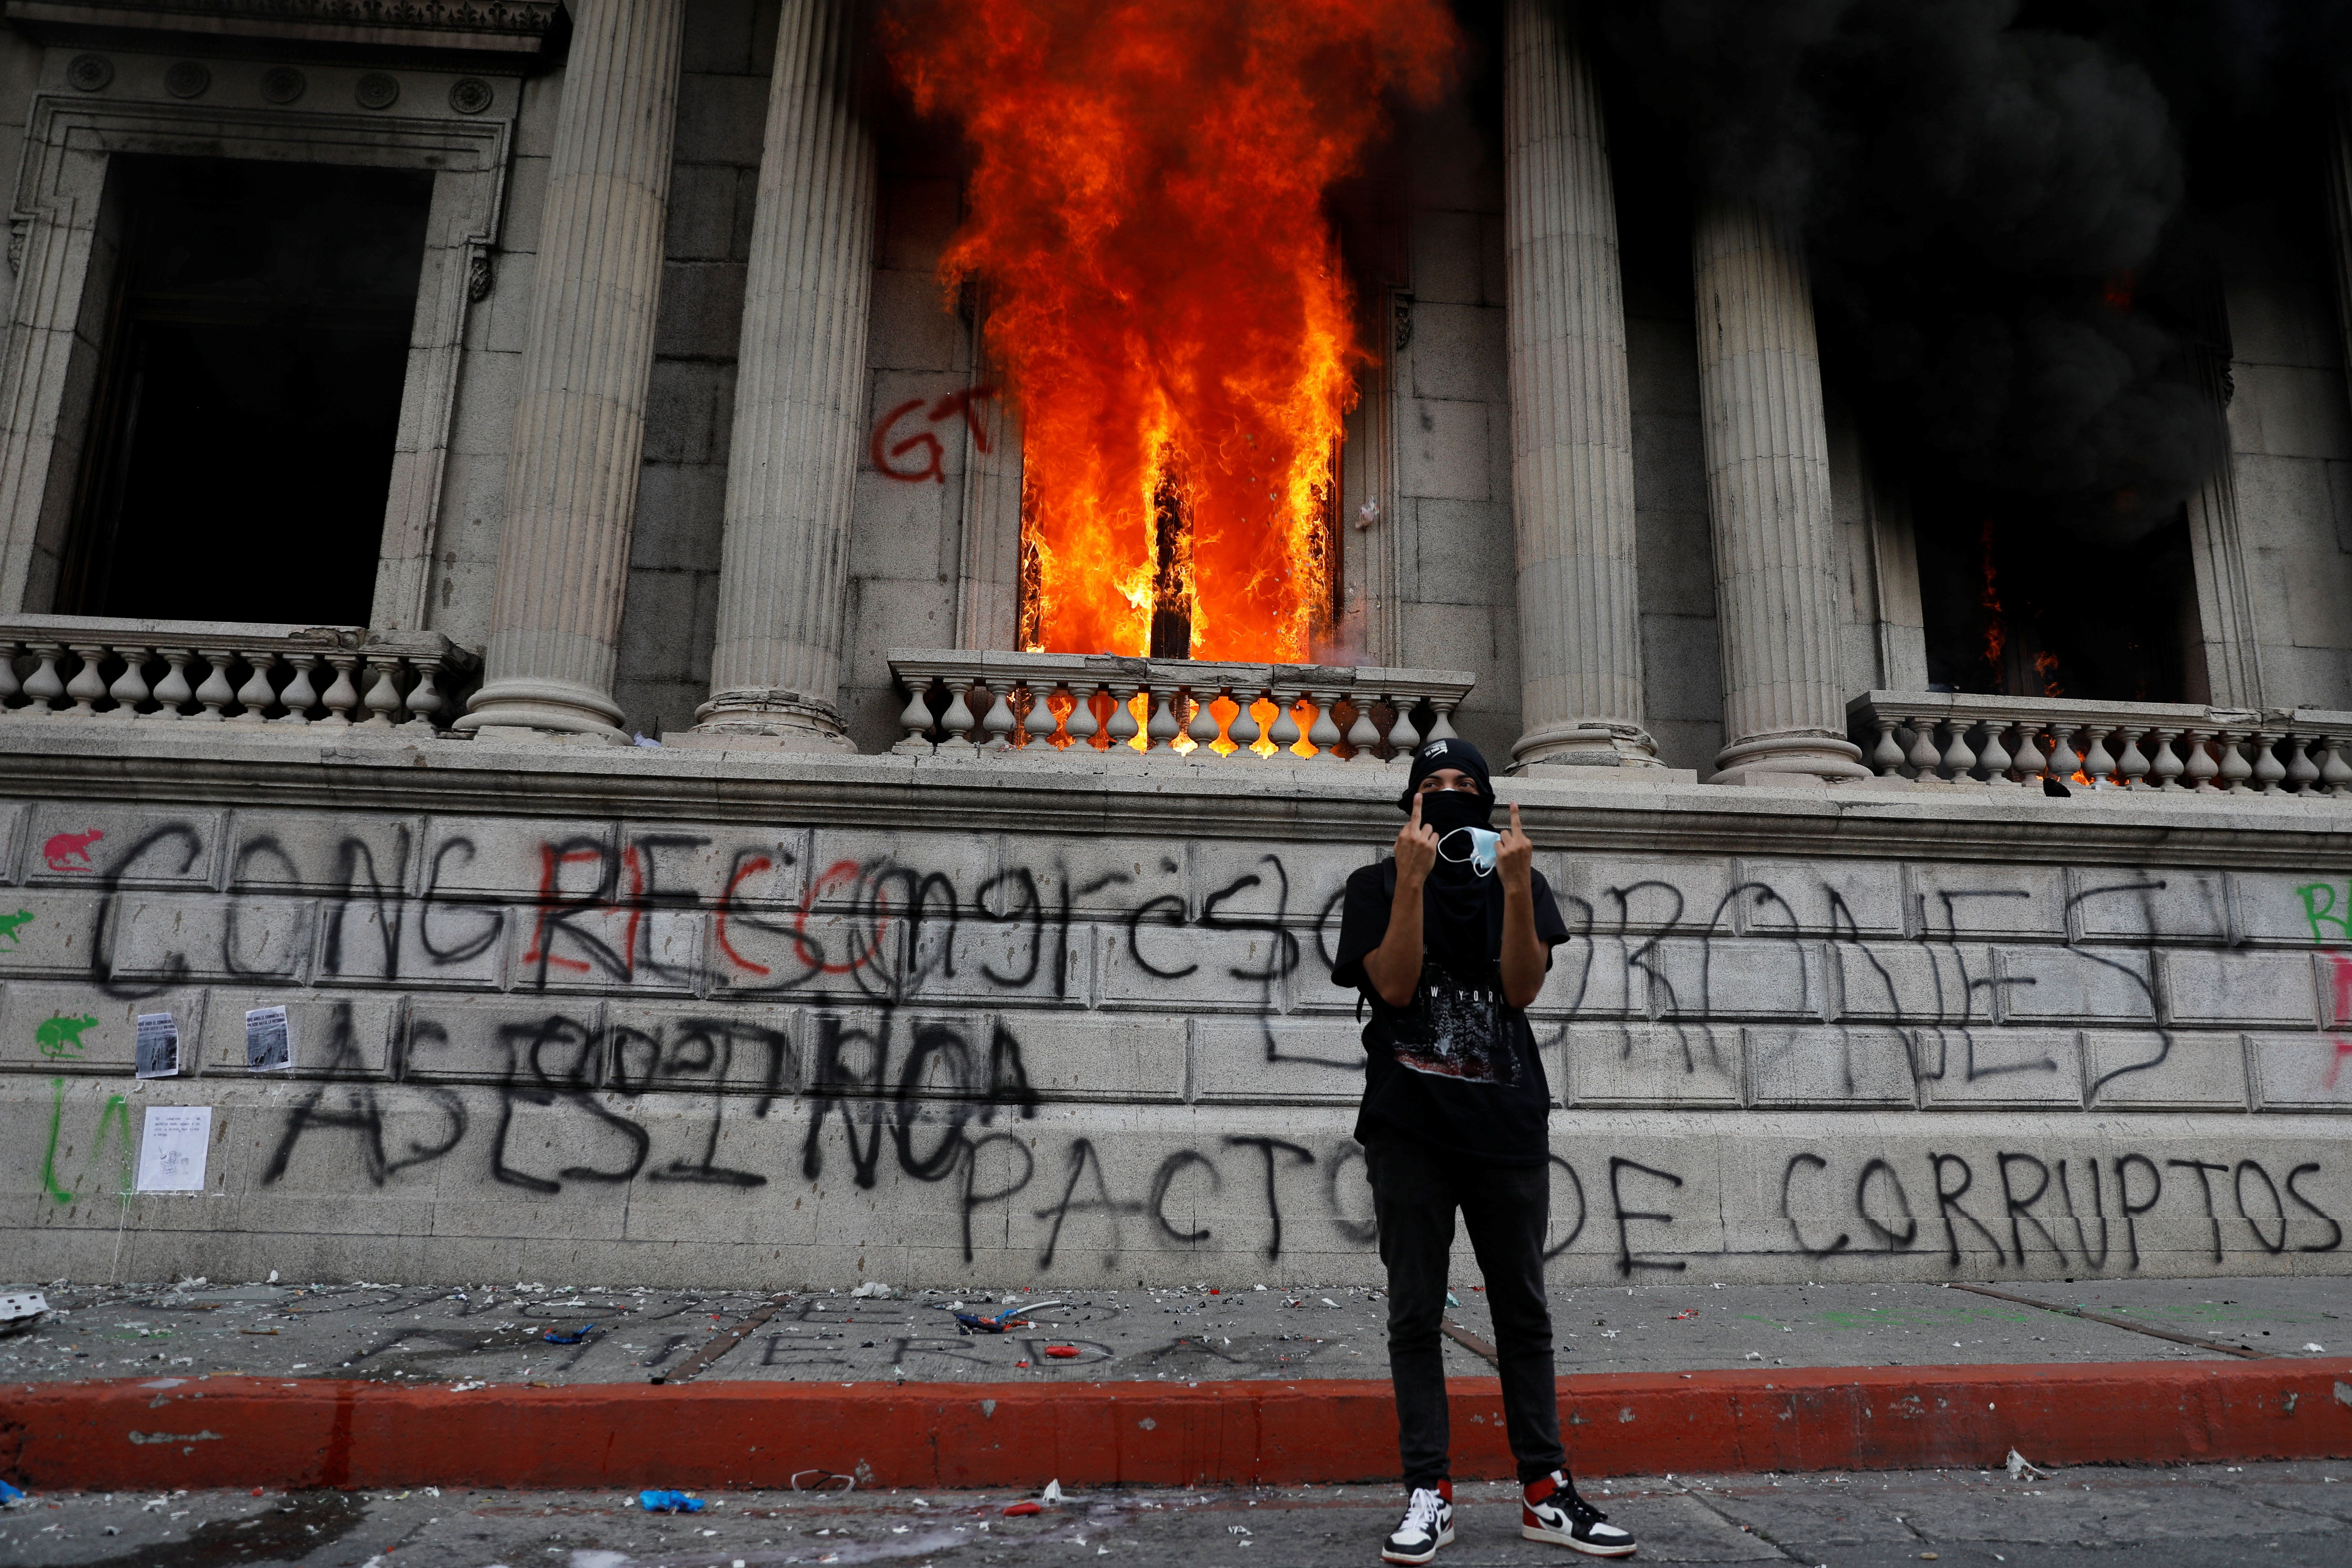 A demonstrator gestures after demonstrators set an office of the Congress building on fire during a protest demanding the resignation of President Alejandro Giammattei, in Guatemala City, Guatemala November 21, 2020.